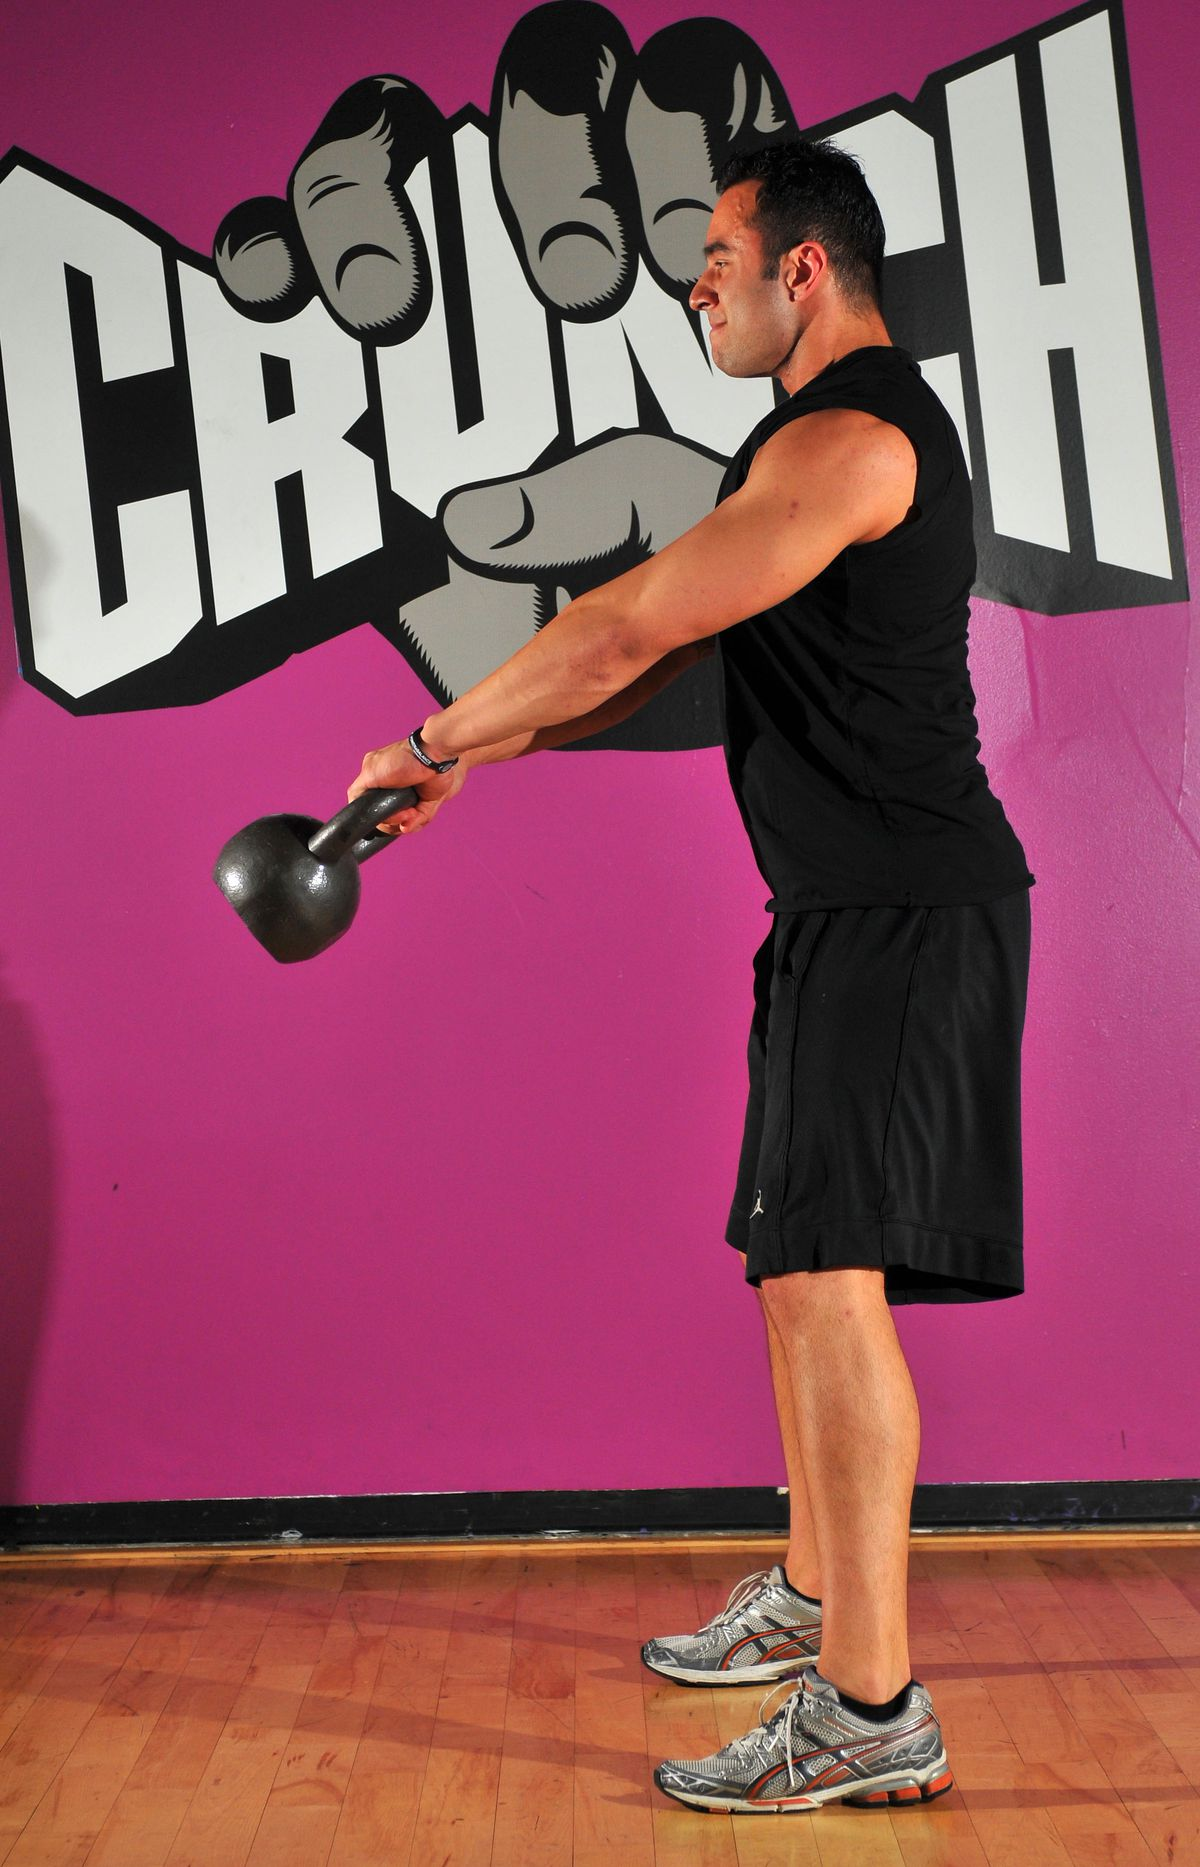 A man exercising at Crunch gym